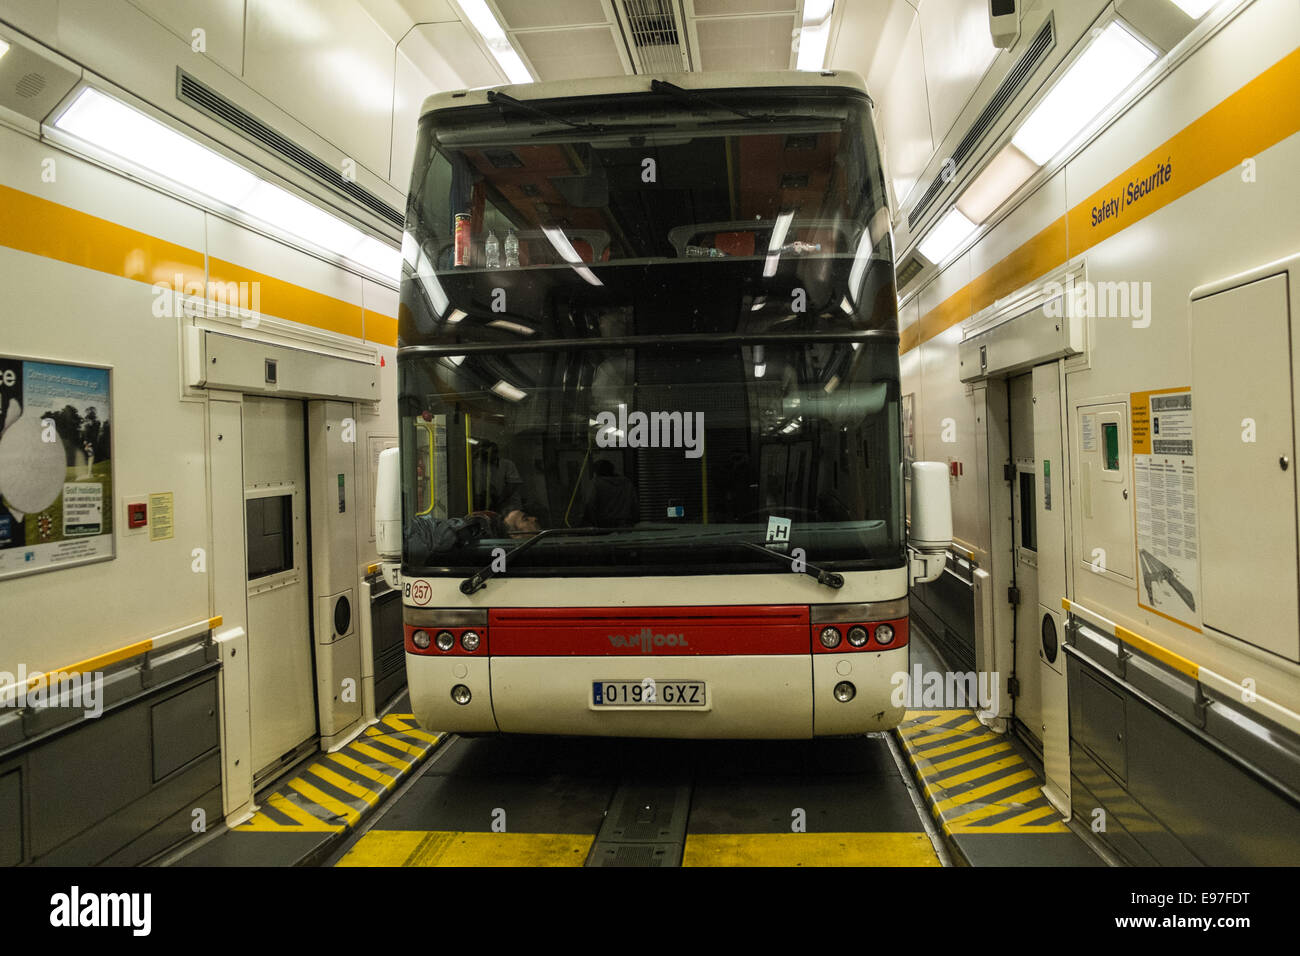 Bus Paris Calais Tour Bus On Eurotunnel Between France And England Stock